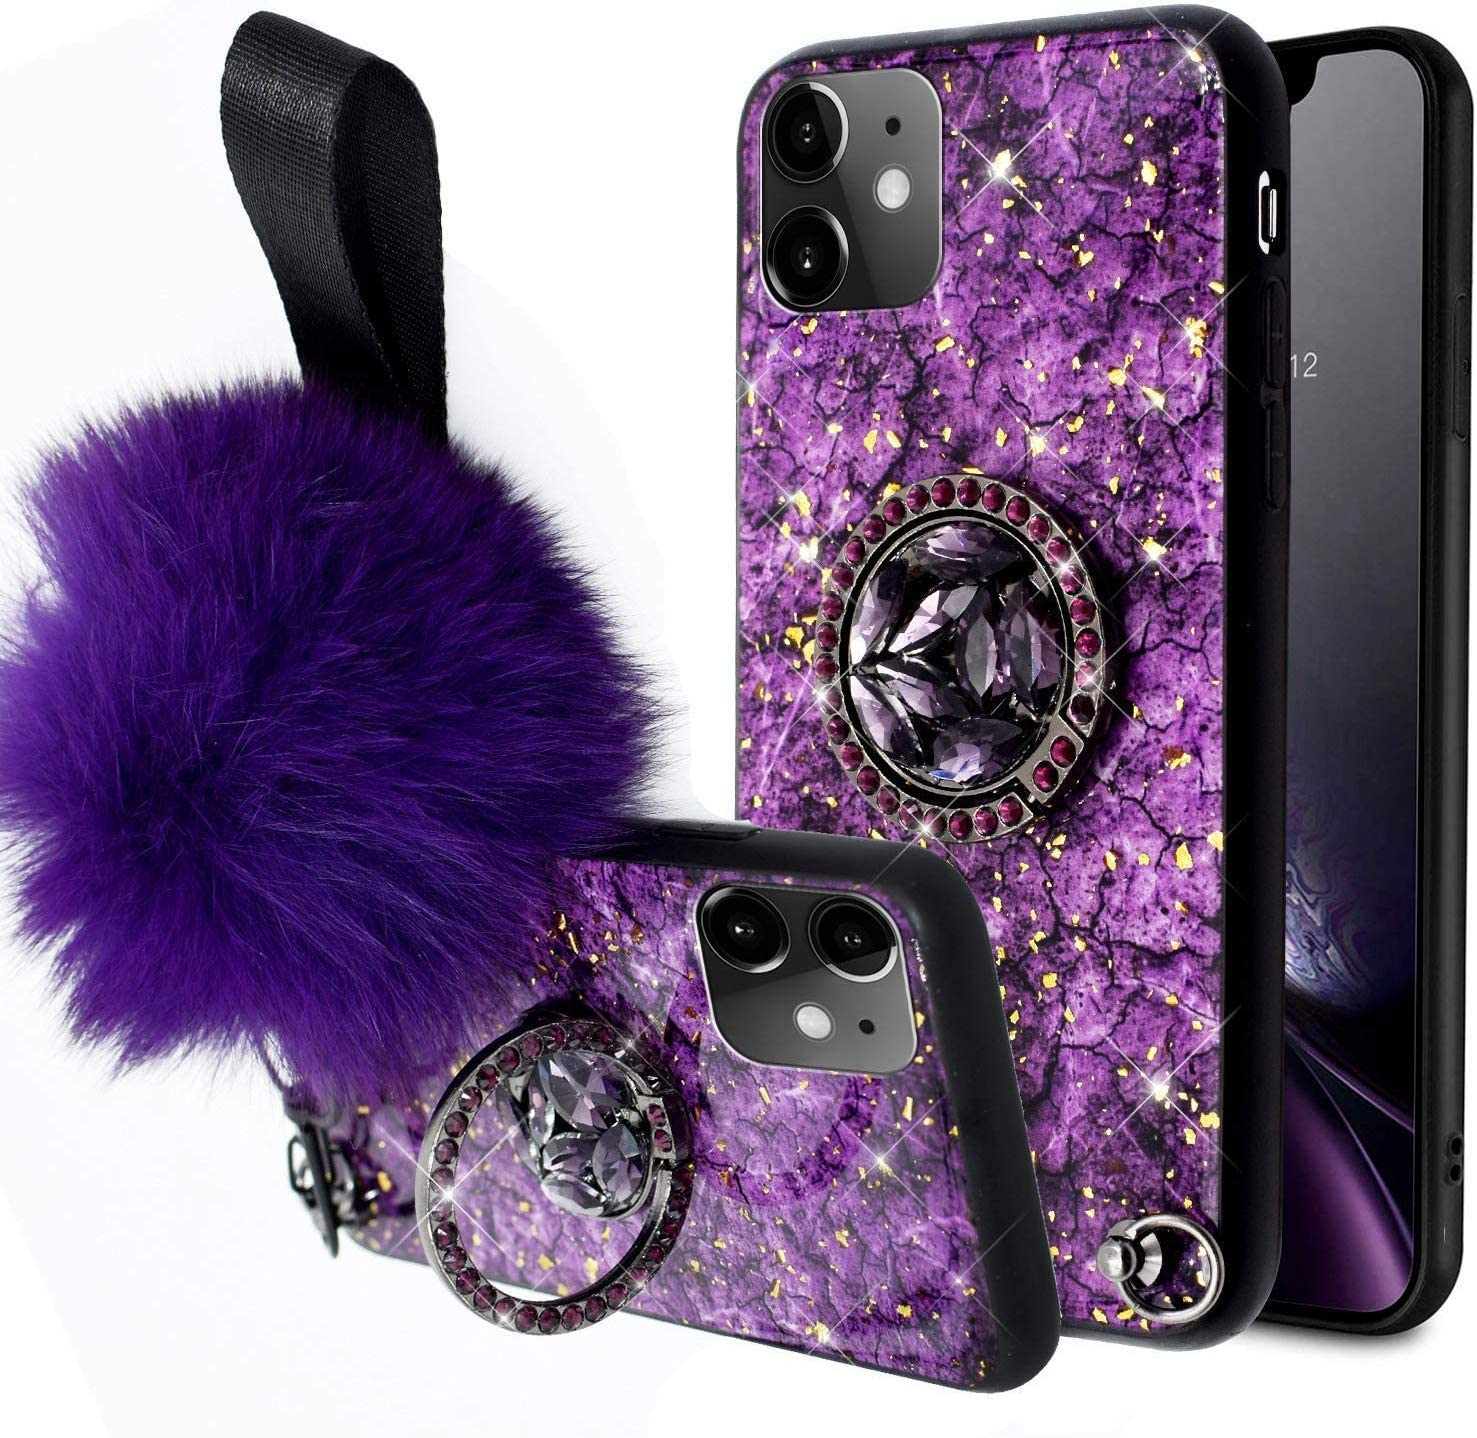 Aulzaju iPhone Xs Max Case for Women iPhone Xs Max Case with Ring Stand Bling iPhone Xs Max Cute Case for Girls with Wrist Strap iPhone Xs Max Glitter Hard Hybrid Silicone Phone Case 6.5'' Purple